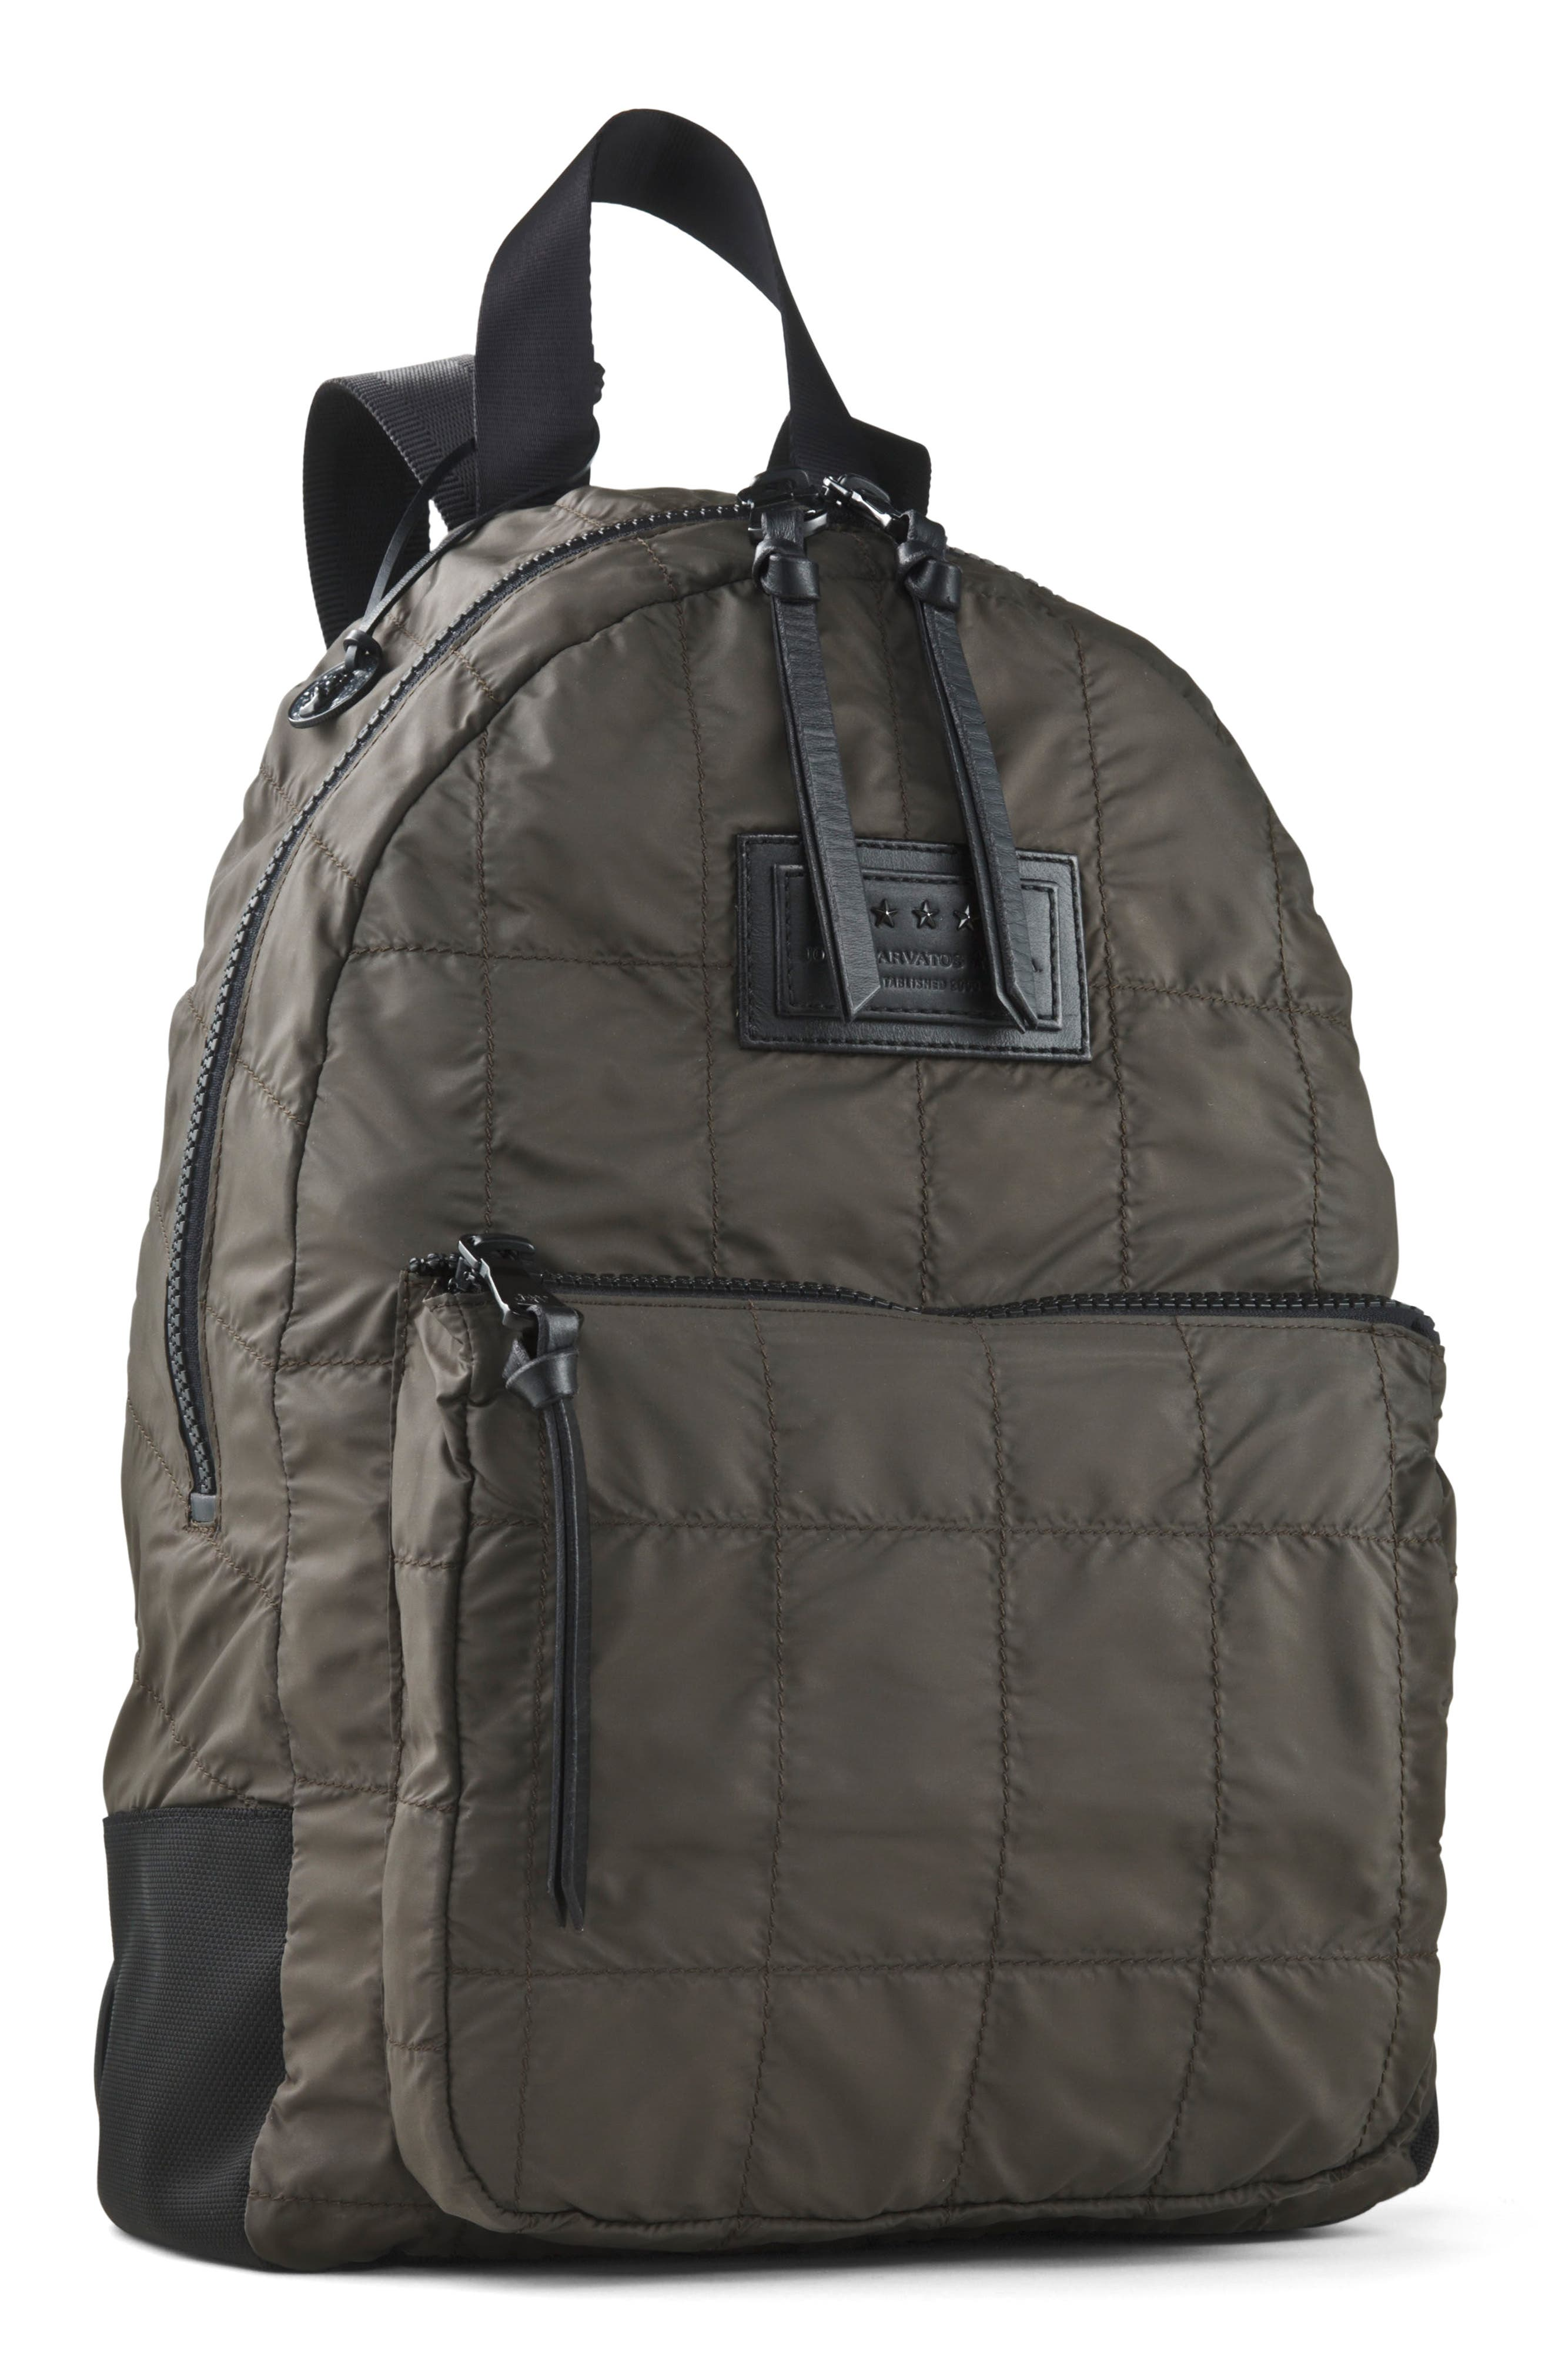 Quilted Nylon Backpack,                             Main thumbnail 1, color,                             Army Green